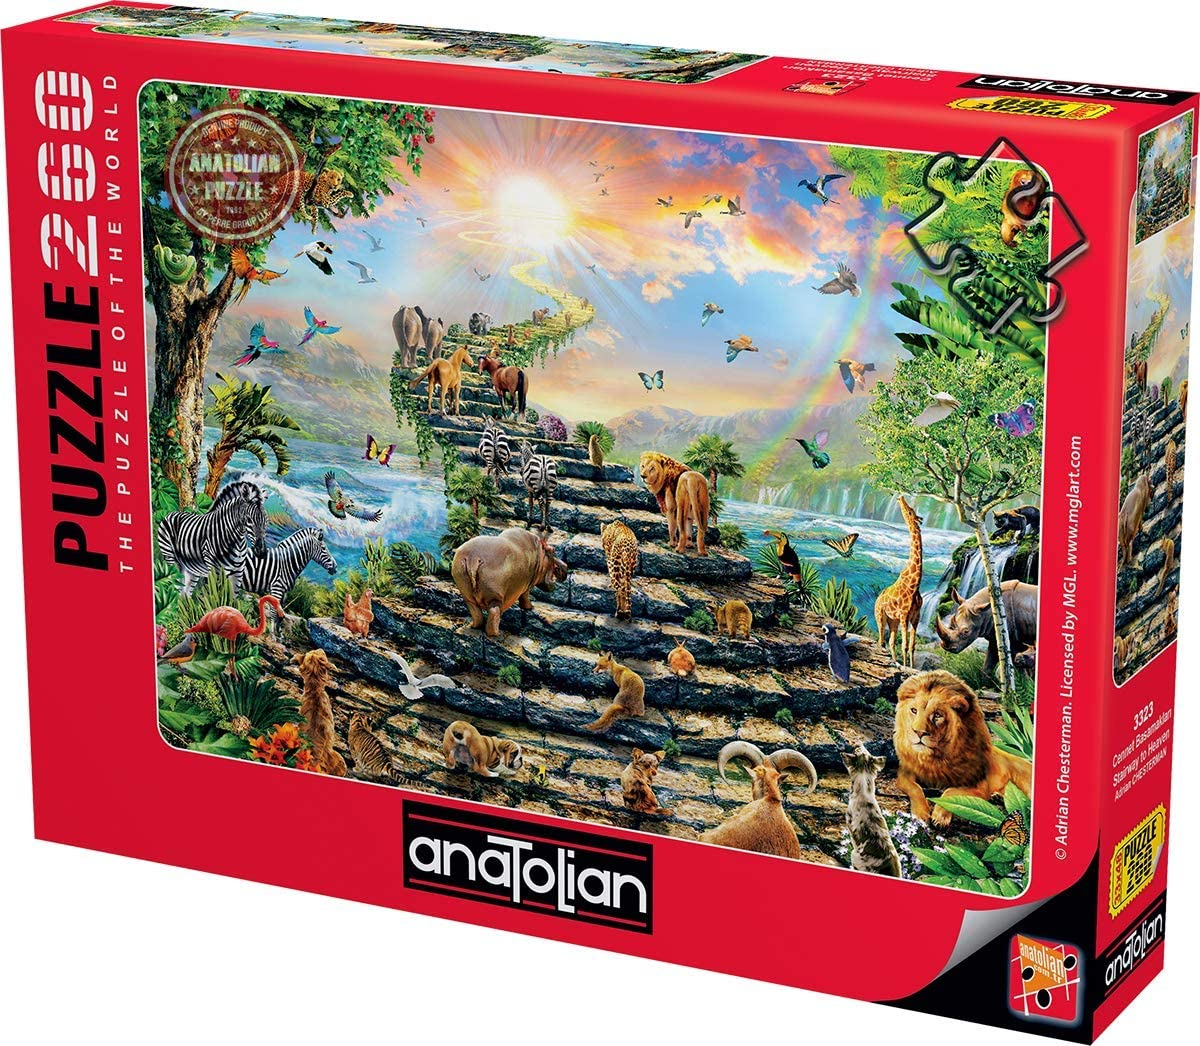 Stairway to Heaven Anatolian Puzzle Code: 3323 260 Piece Jigsaw Puzzle